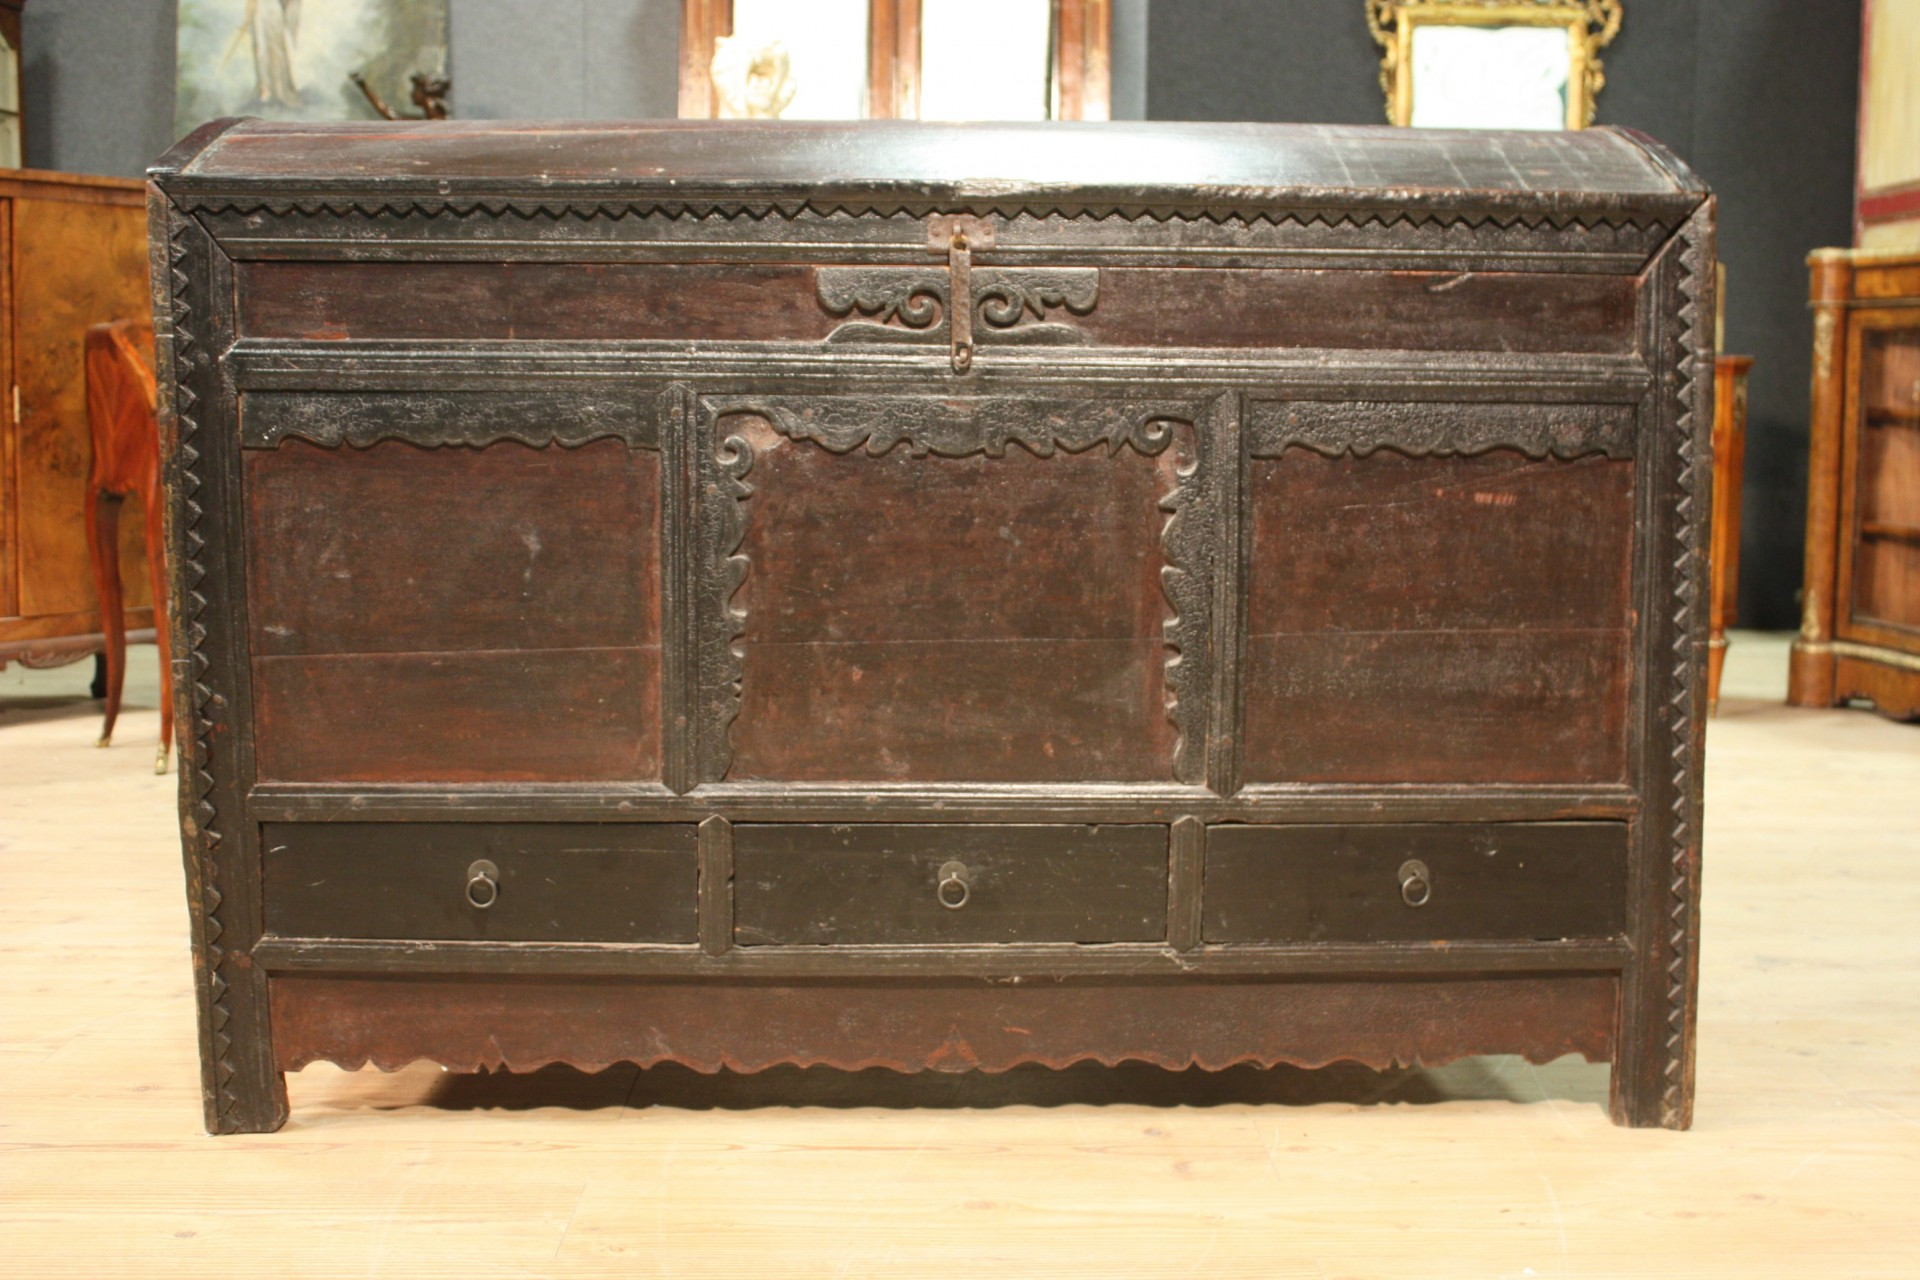 Rustic trunk eastern furniture wood antique style chest antiques 900  eBay